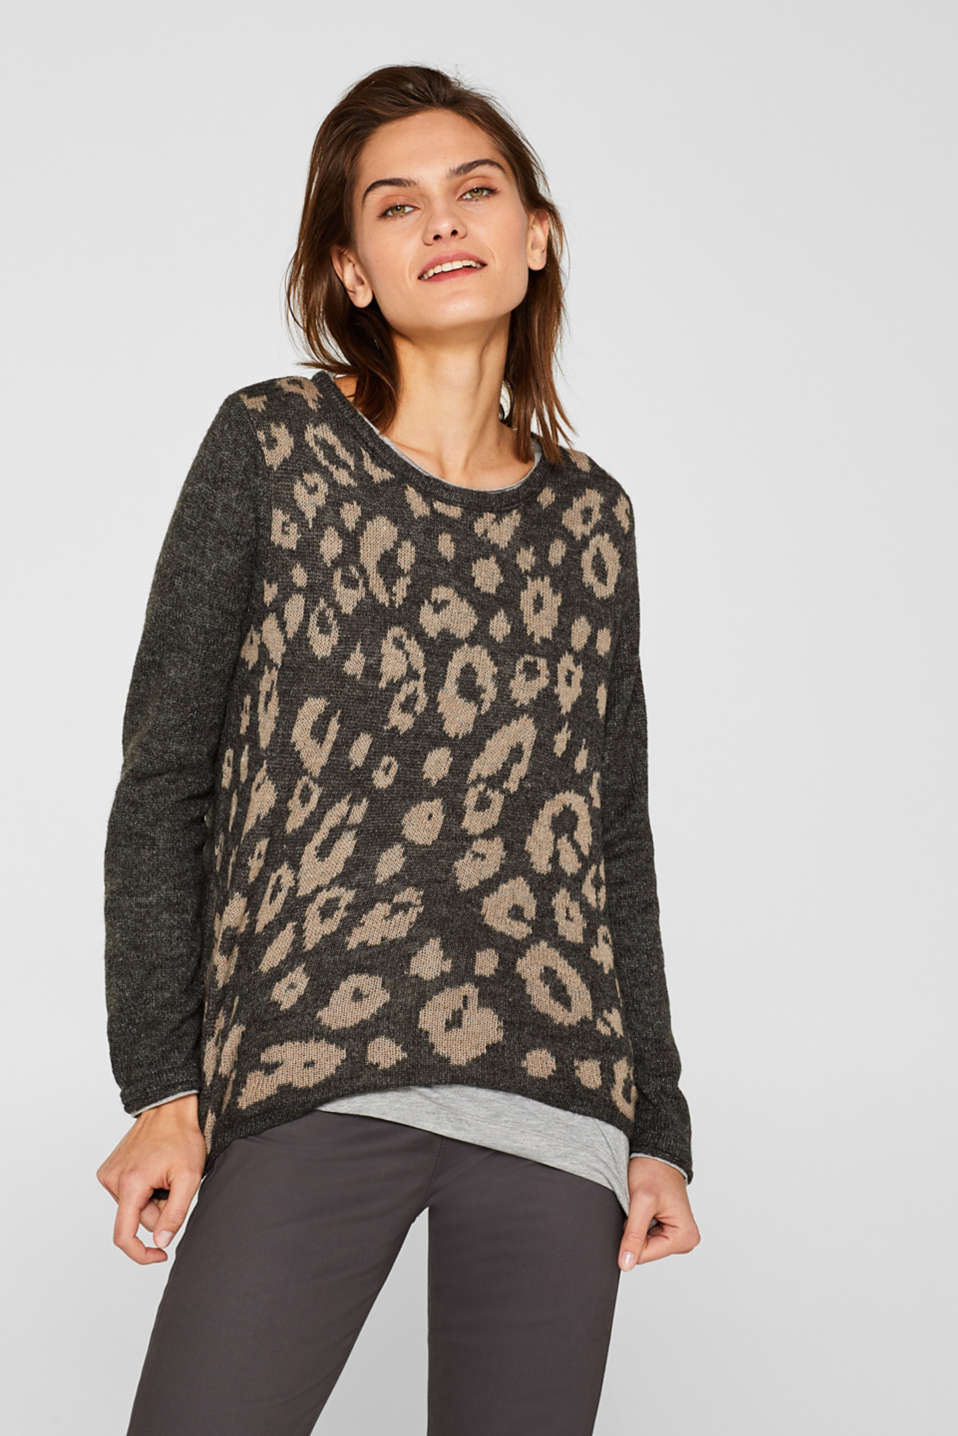 Esprit - With wool: Leopard jumper with a jersey inner section